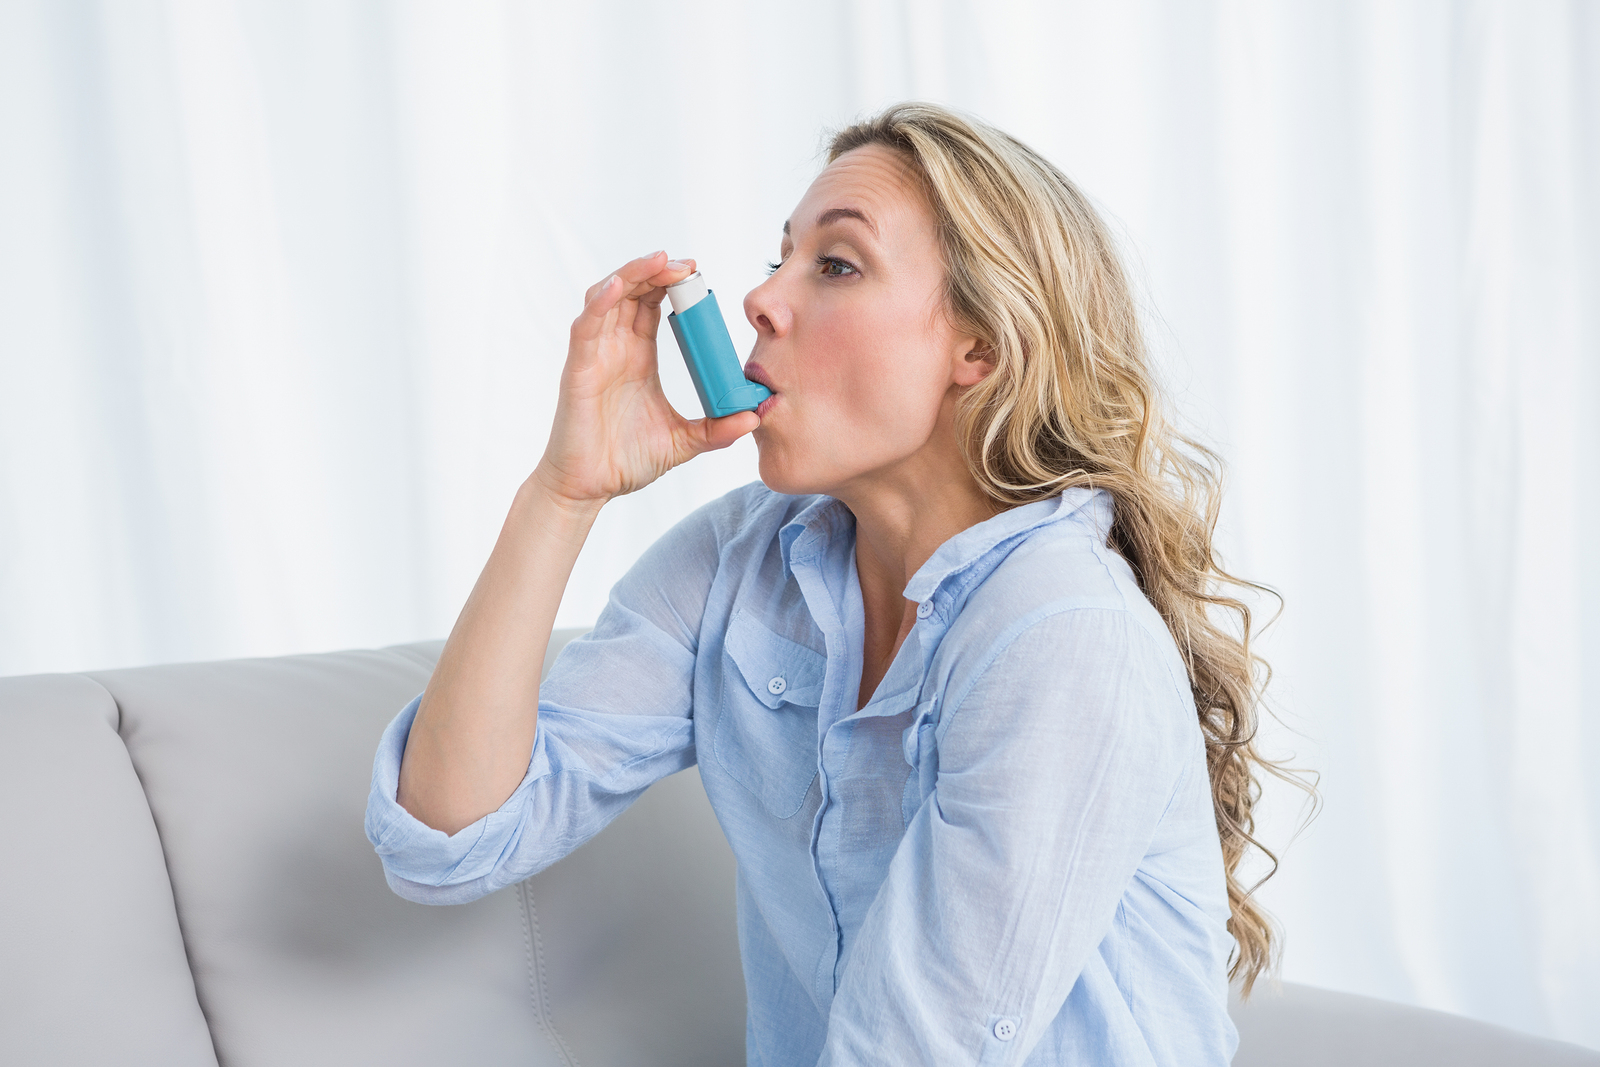 bigstock-Blonde-using-her-asthma-inhale-82664480-2